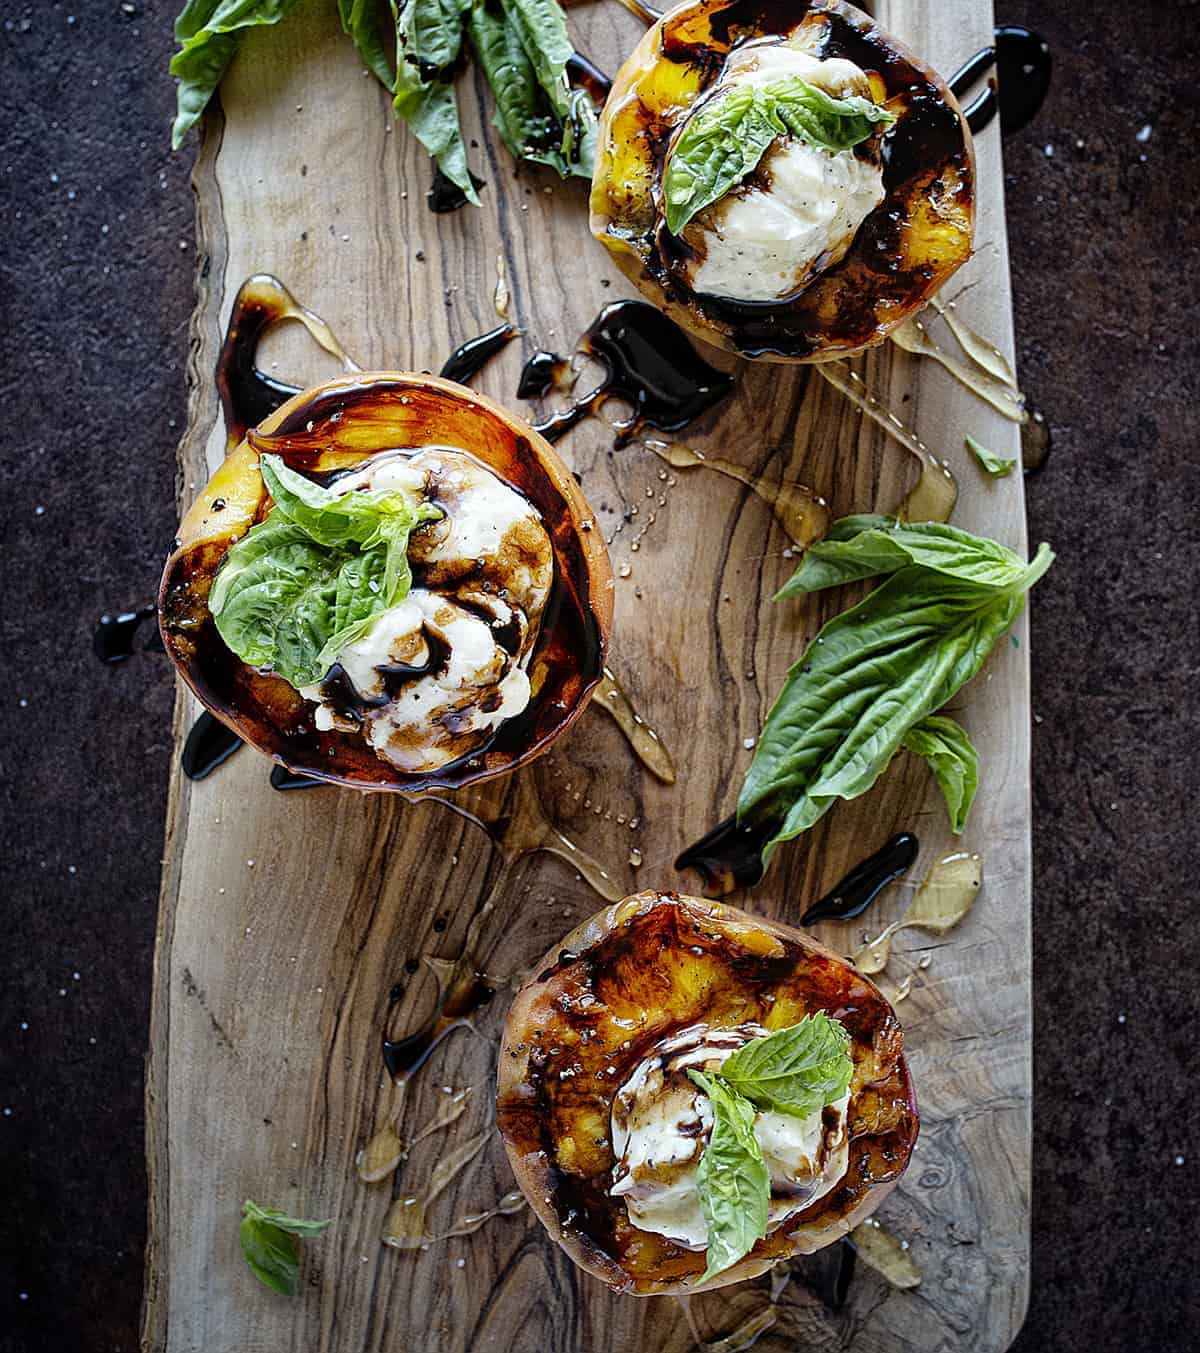 Ready to serve Grilled Peaches with Mascarpone and Balsamic Reduction